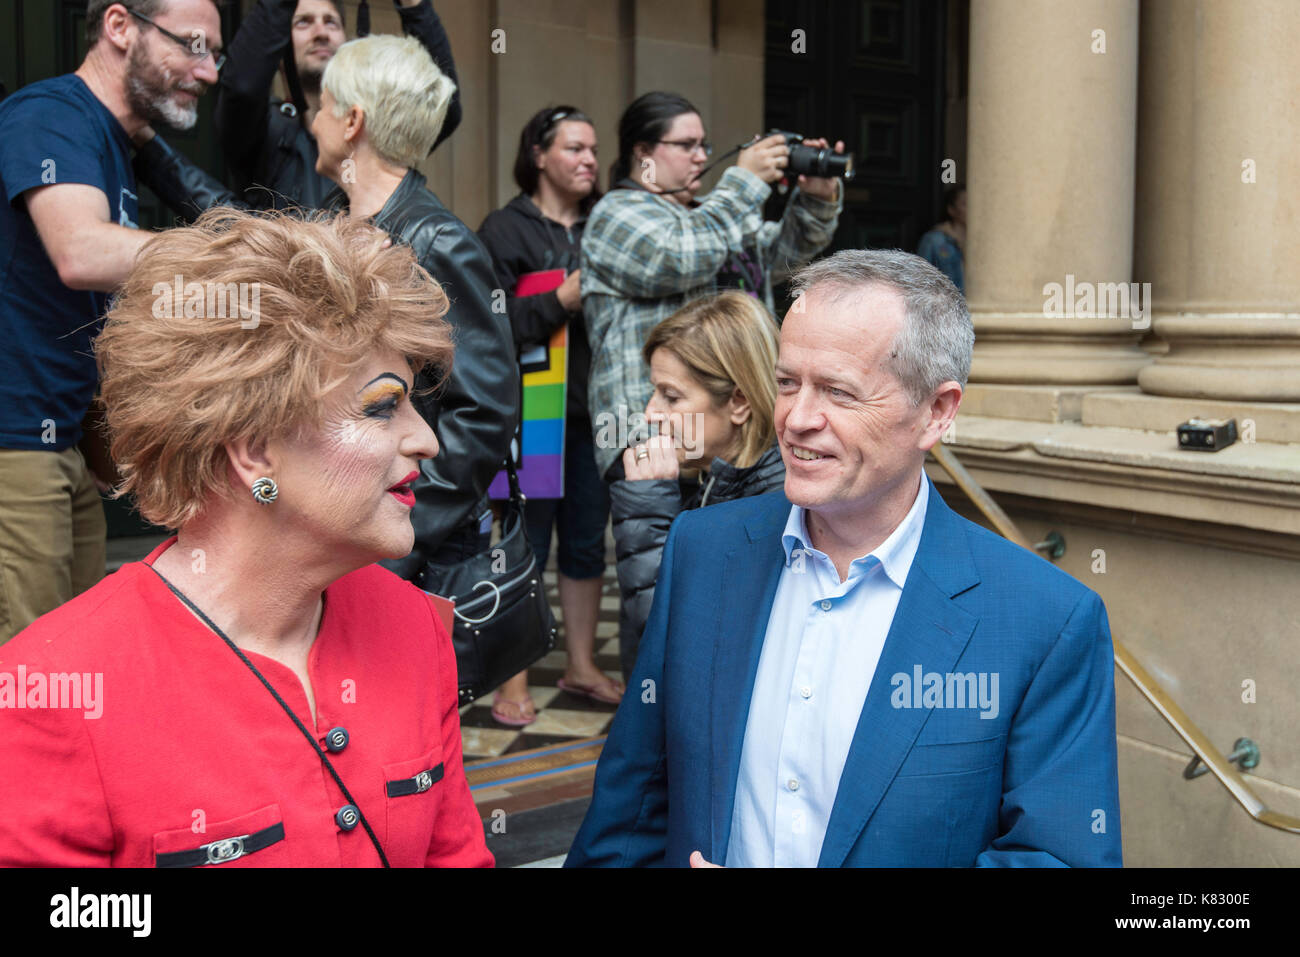 federal-opposition-leader-mr-bill-shorten-speaks-to-actor-comedian-K8300E.jpg